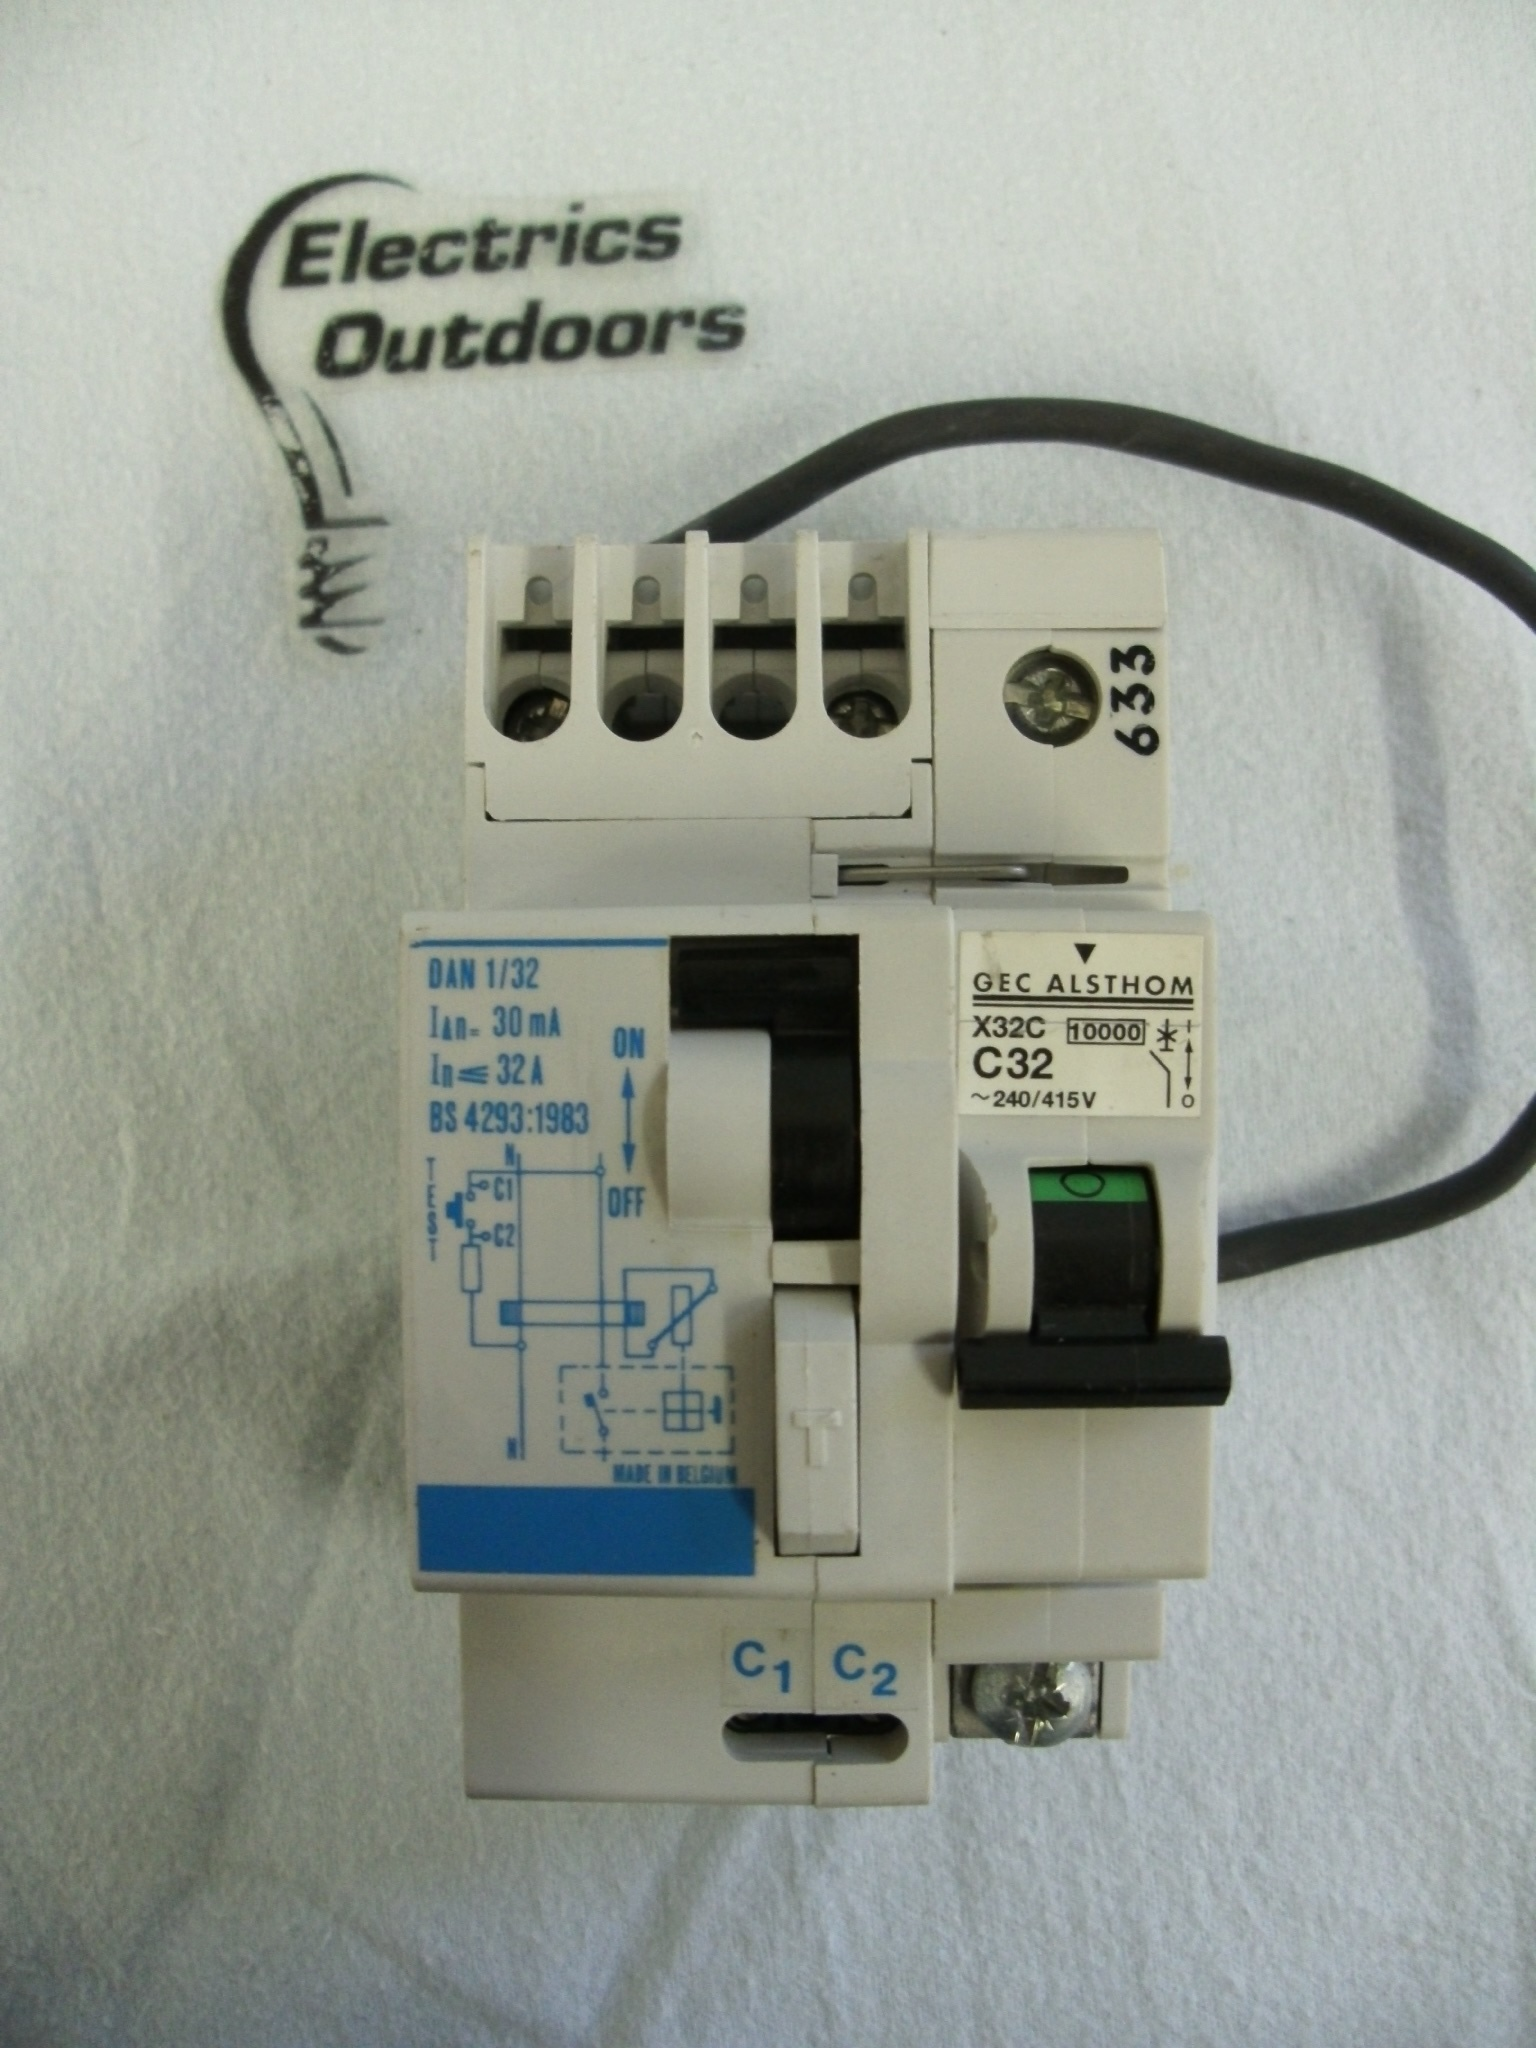 Circuit Breaker Specialists 20a 400v Onoff Mcb With Cover Buy Gec Vynckier 30 Ma Rcd Rcbo Module Dan 1 32 Bs 4293 Amp